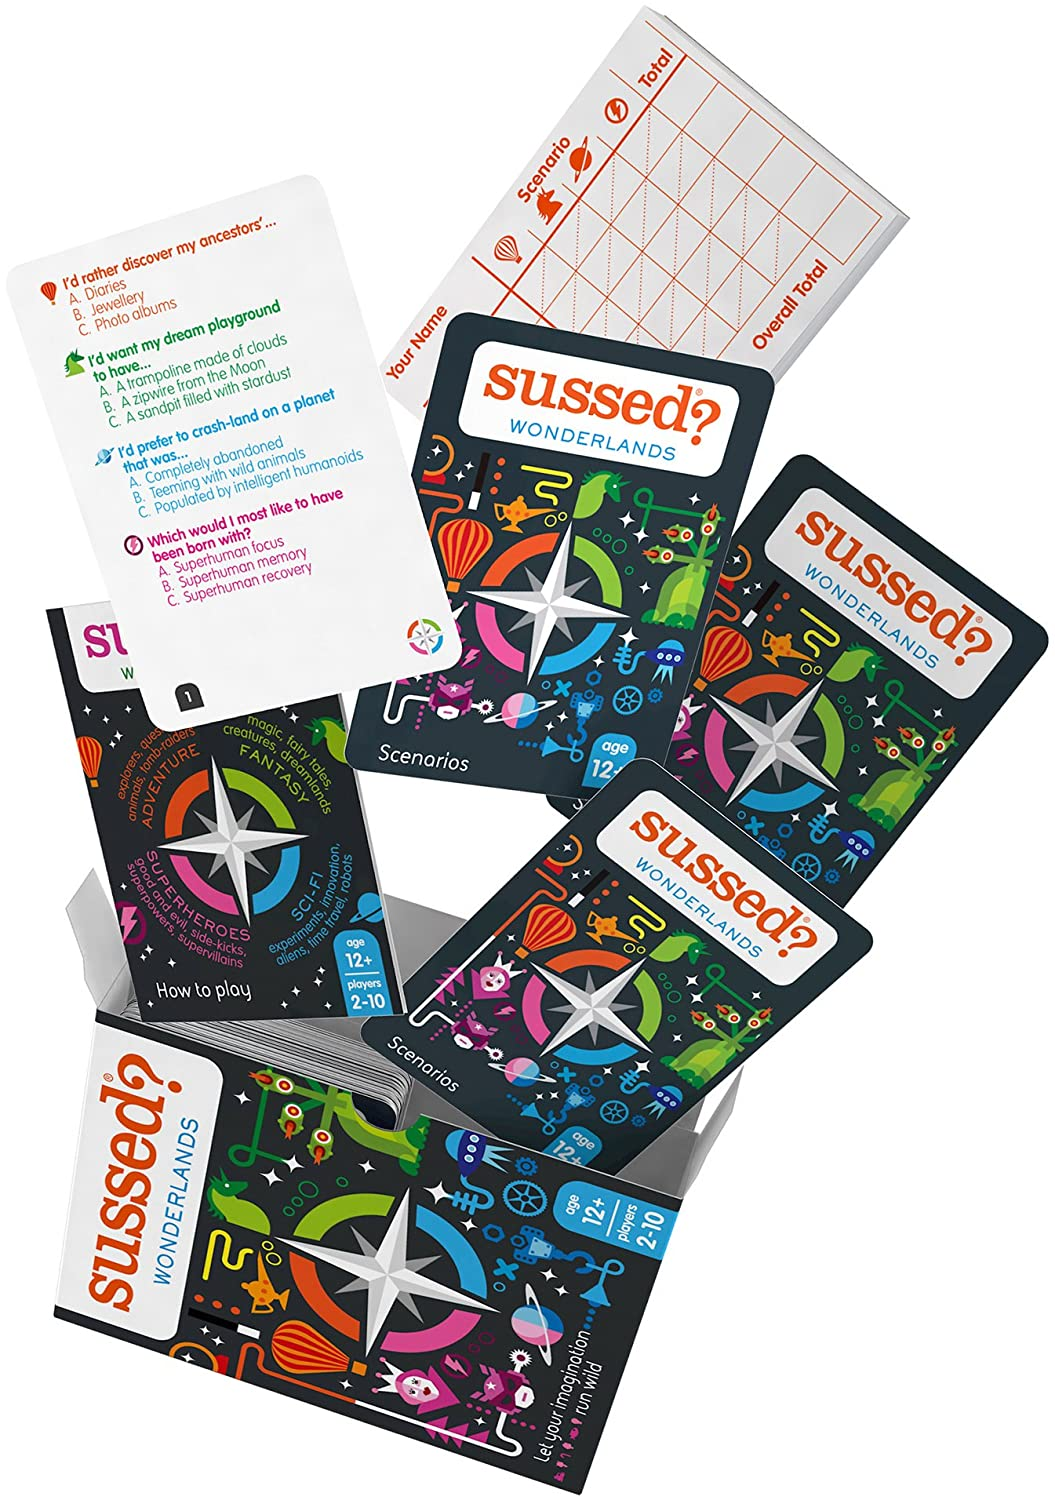 Hilarious Family Friendly Conversation Card Game SUSSED Wonderlands Find Out Who Knows Who Best